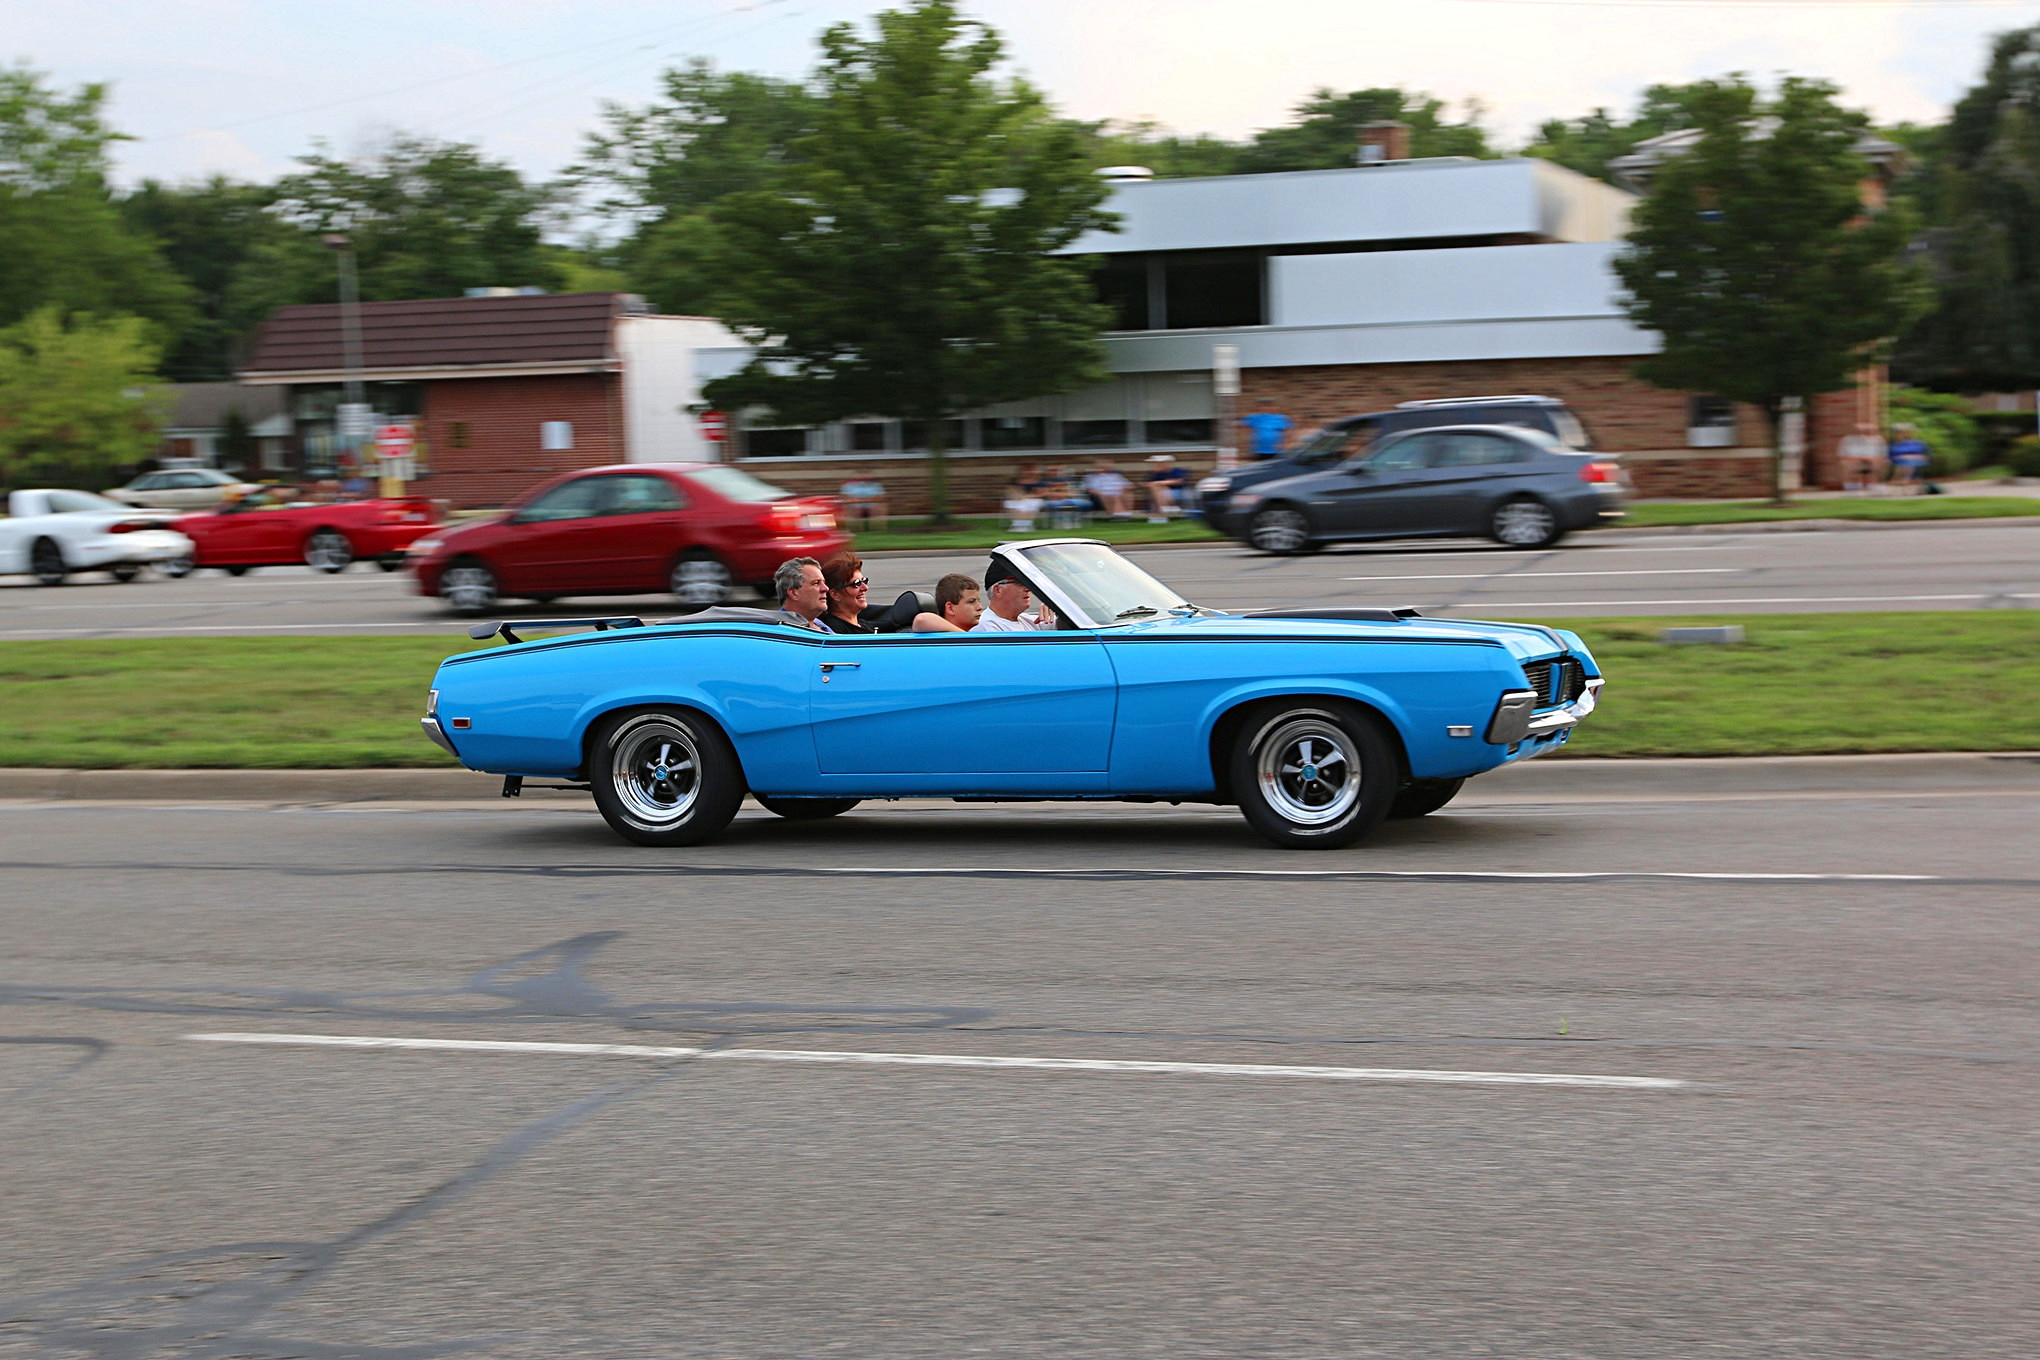 2016 Woodward Dream Cruise Mustangs 047